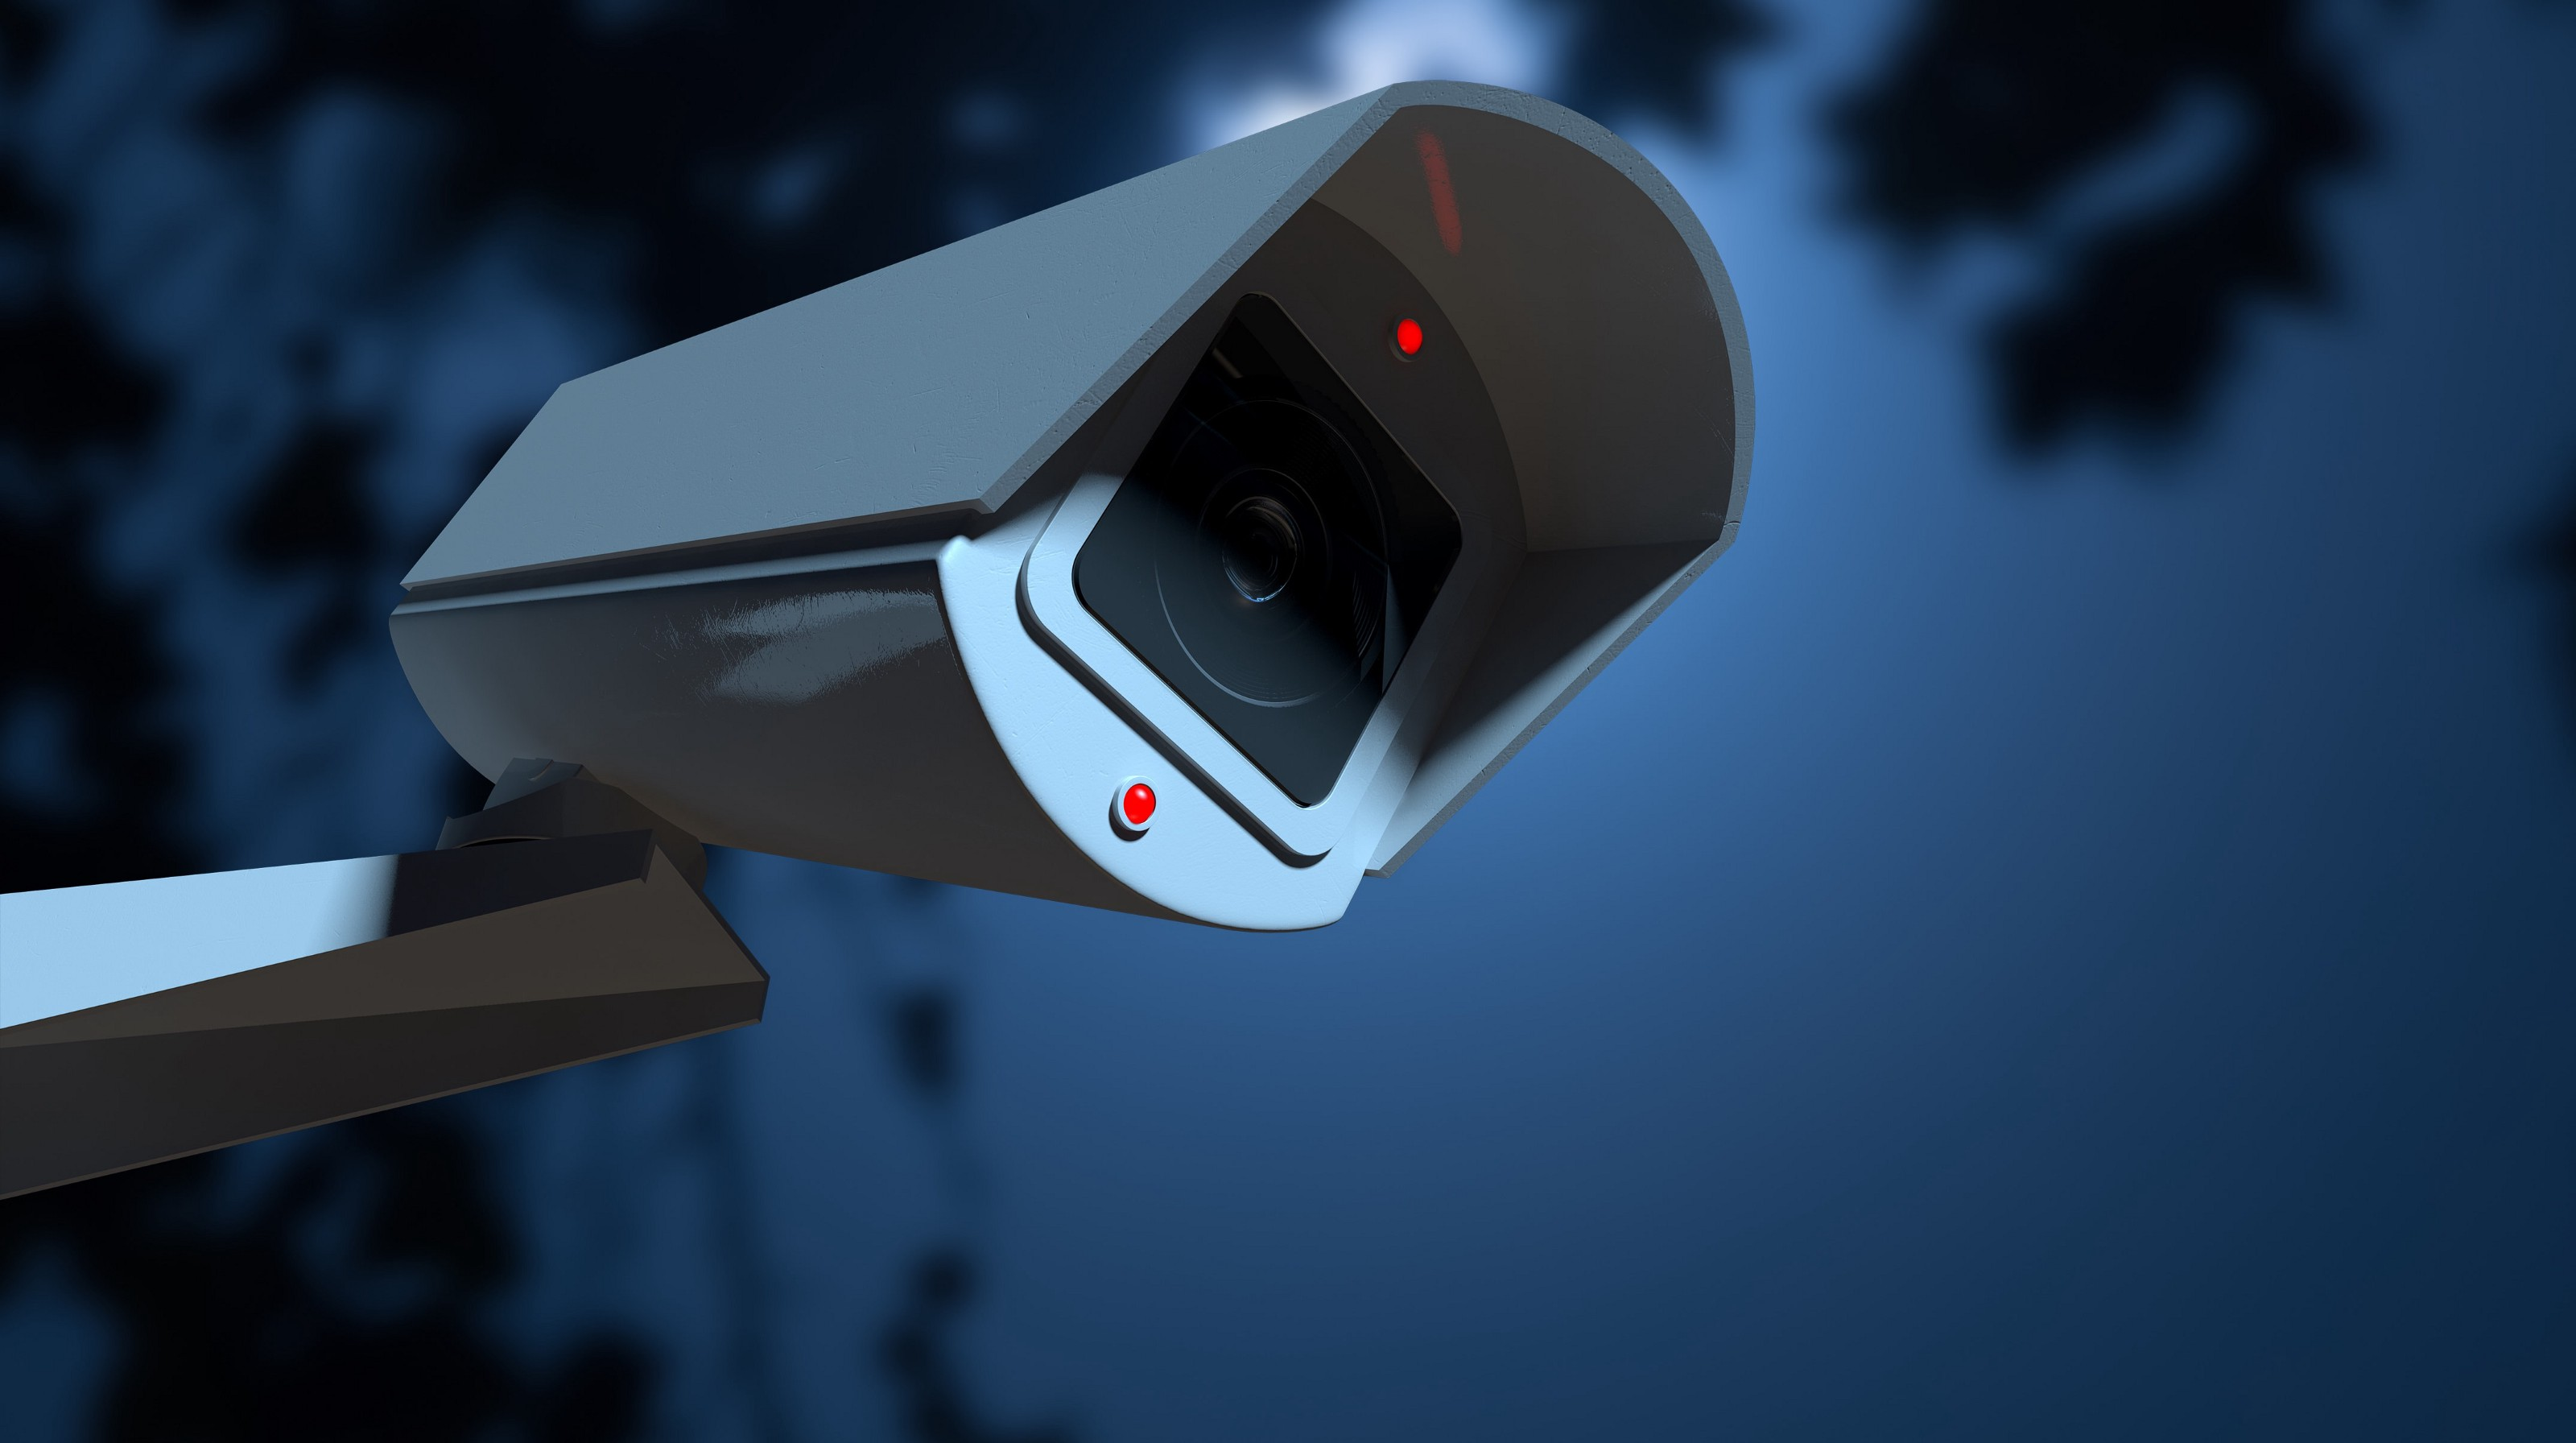 CCTV SECURITY SYSTEMS in Doha Qatar